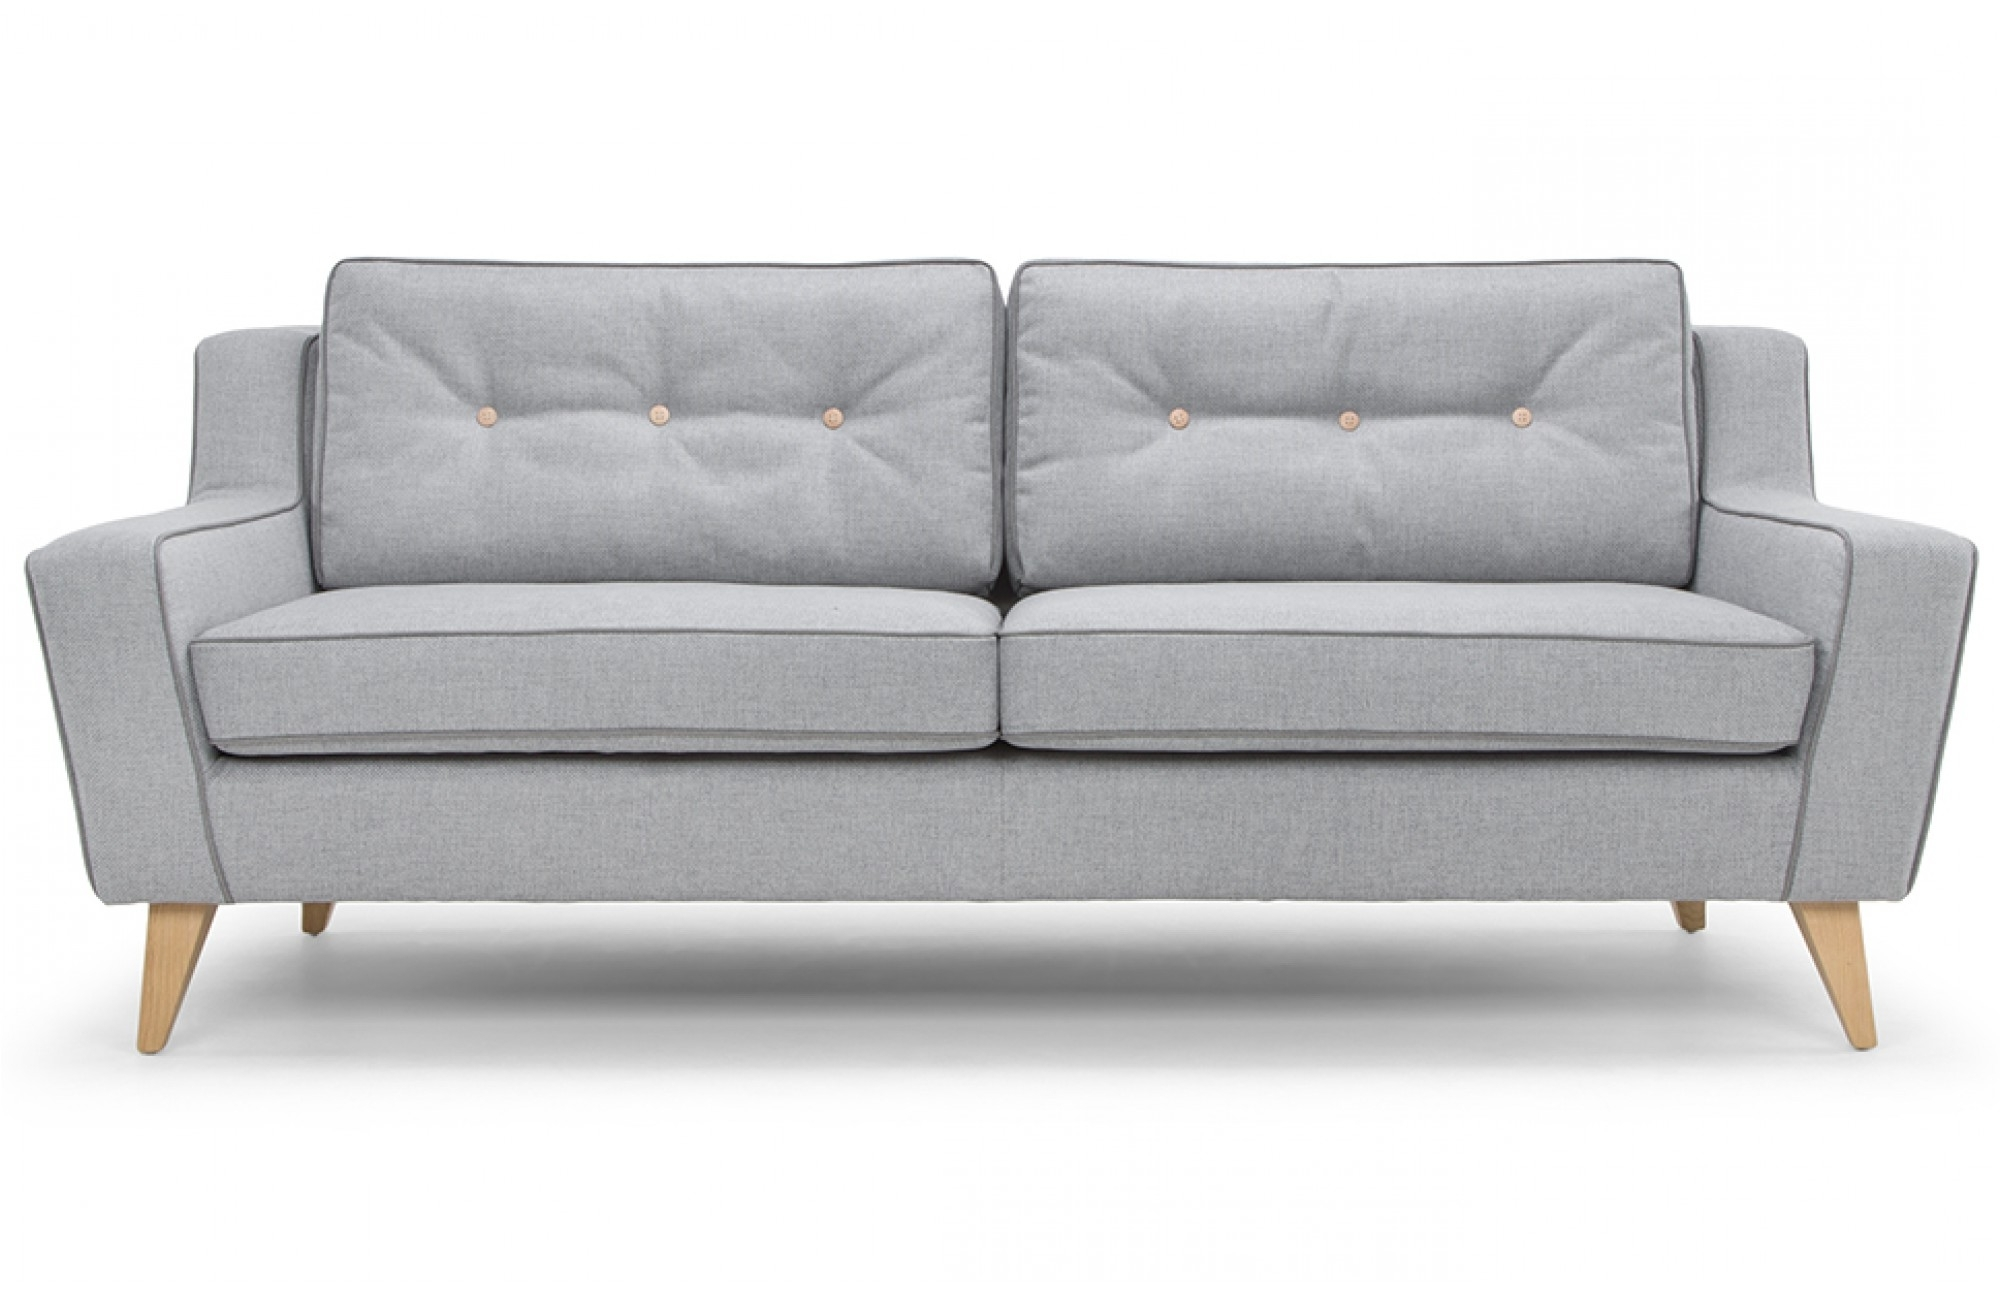 Preferred Stone Grey 3 Seater Sofa – Lounge Furniture – Out & Out Original In Modern 3 Seater Sofas (View 18 of 20)